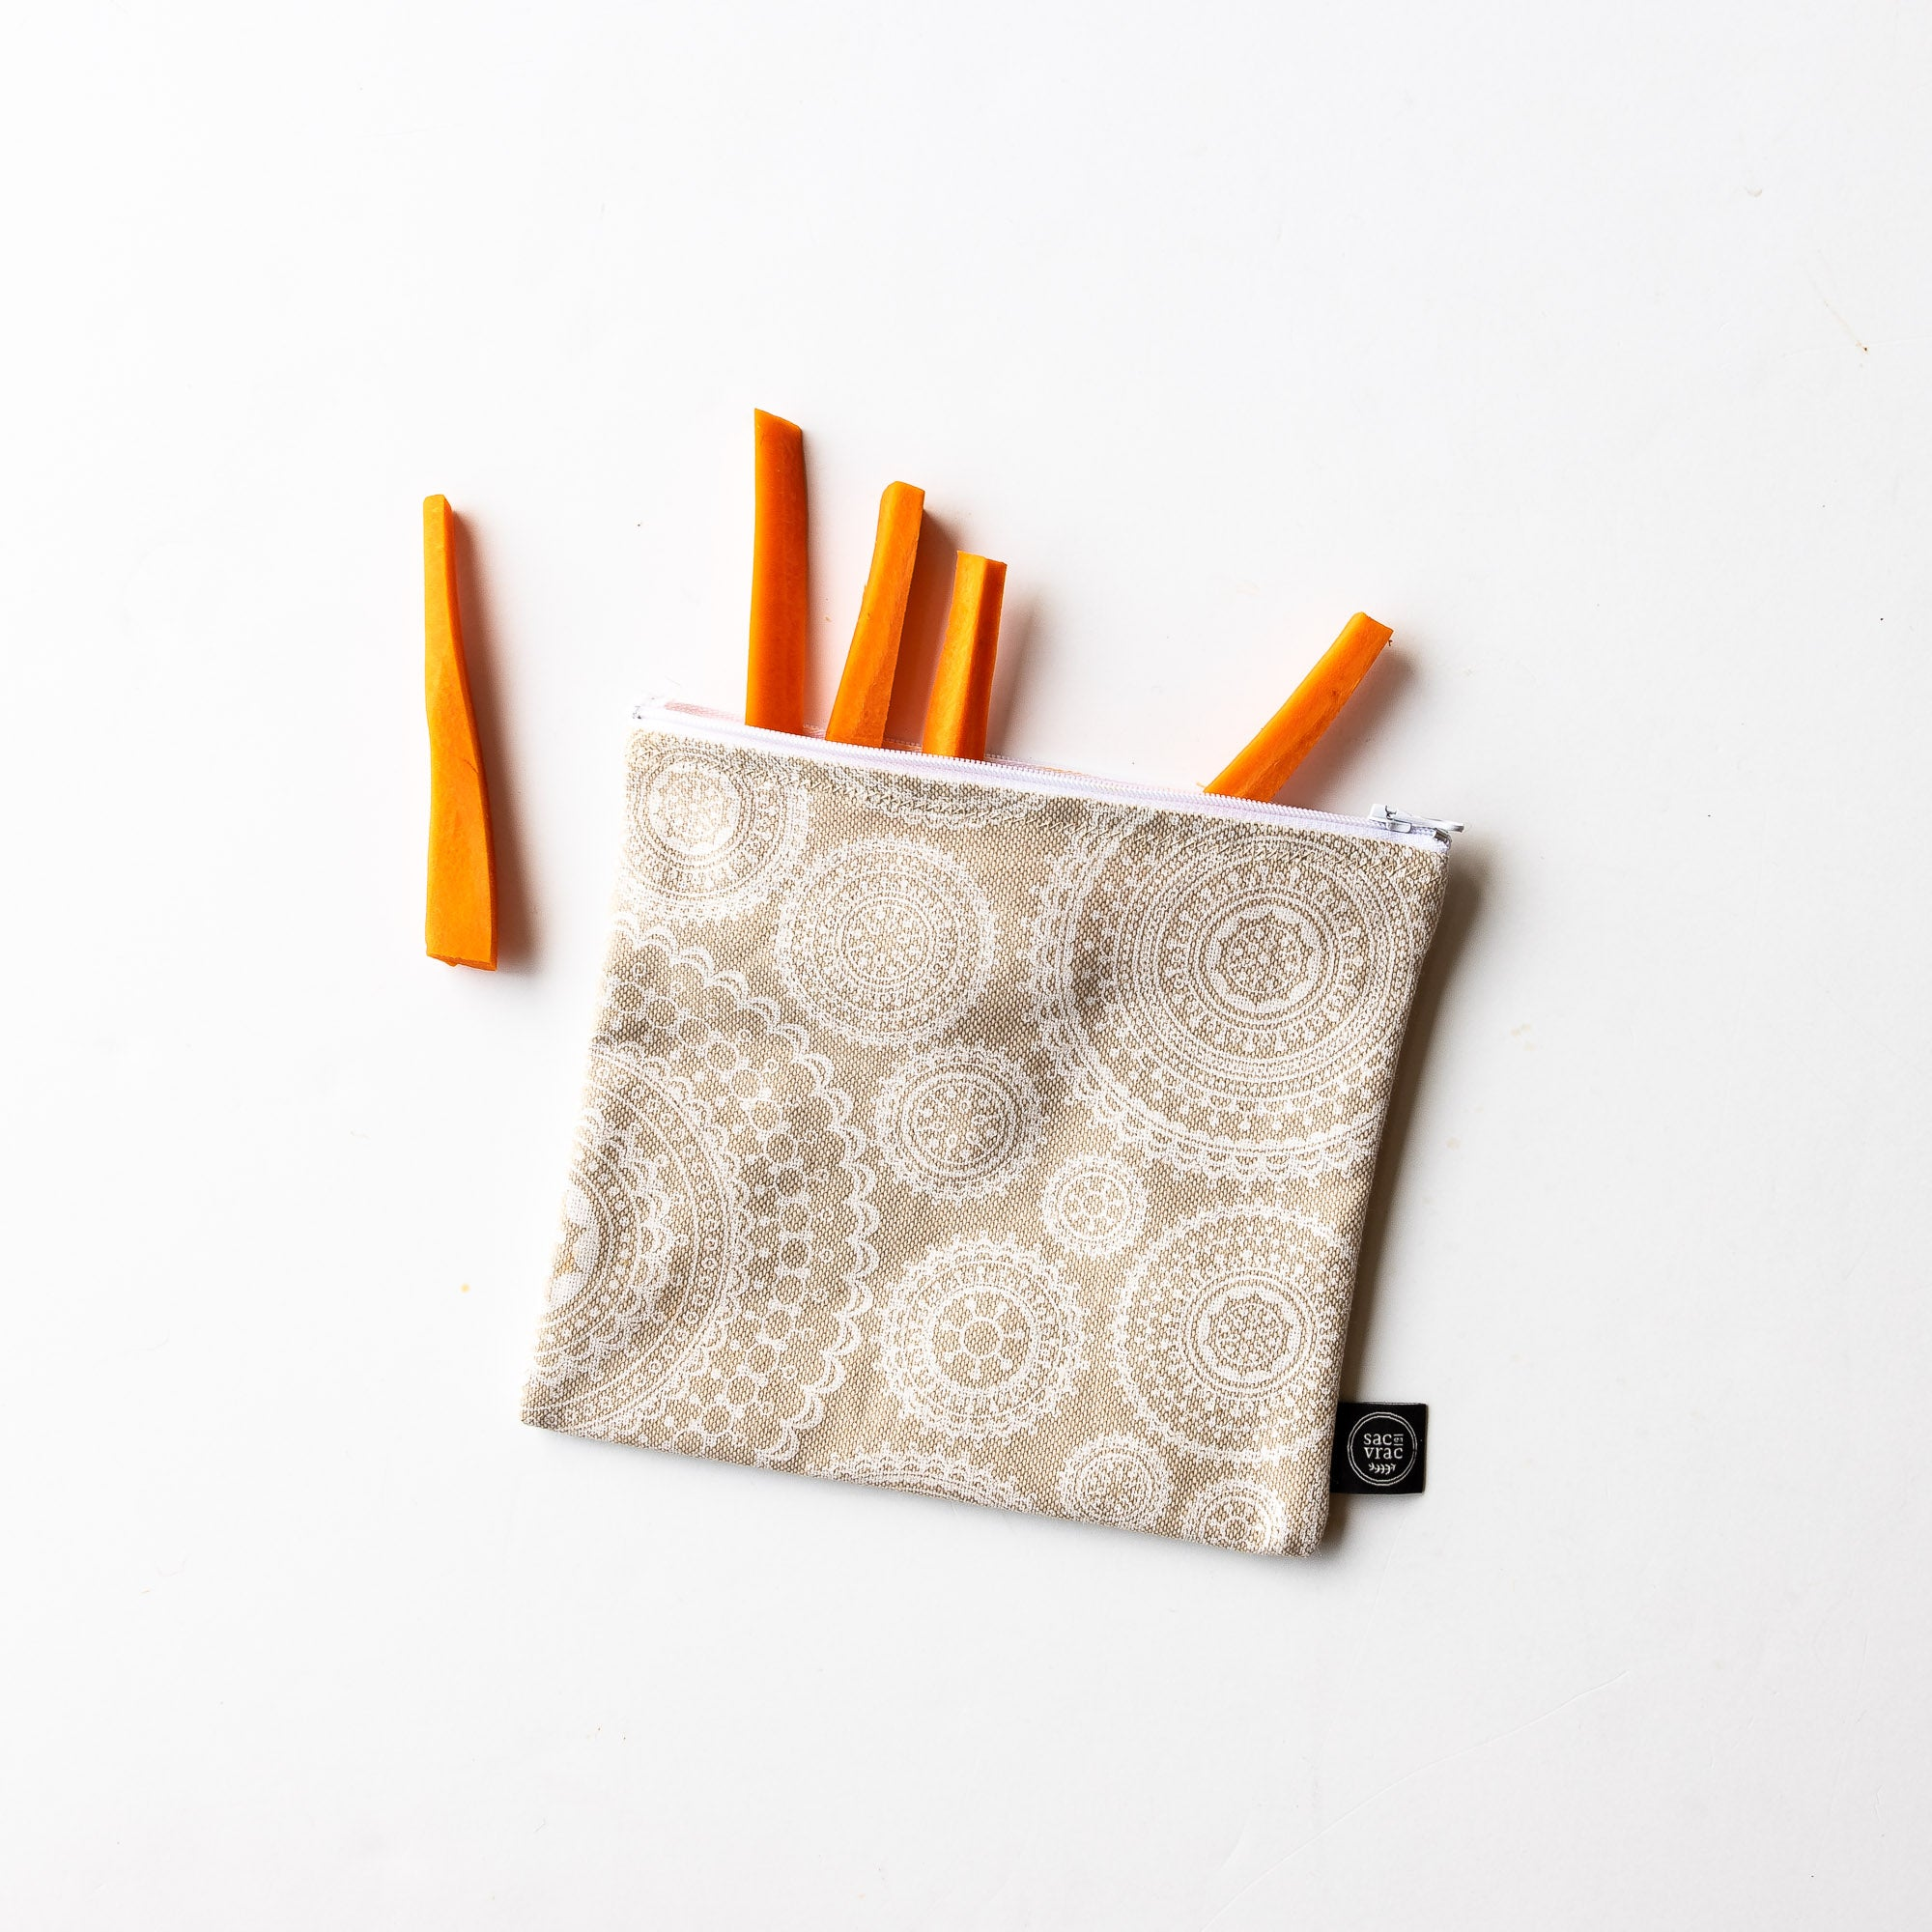 Reusable Sandwich / Snack Bag - Sold by Chic & Basta